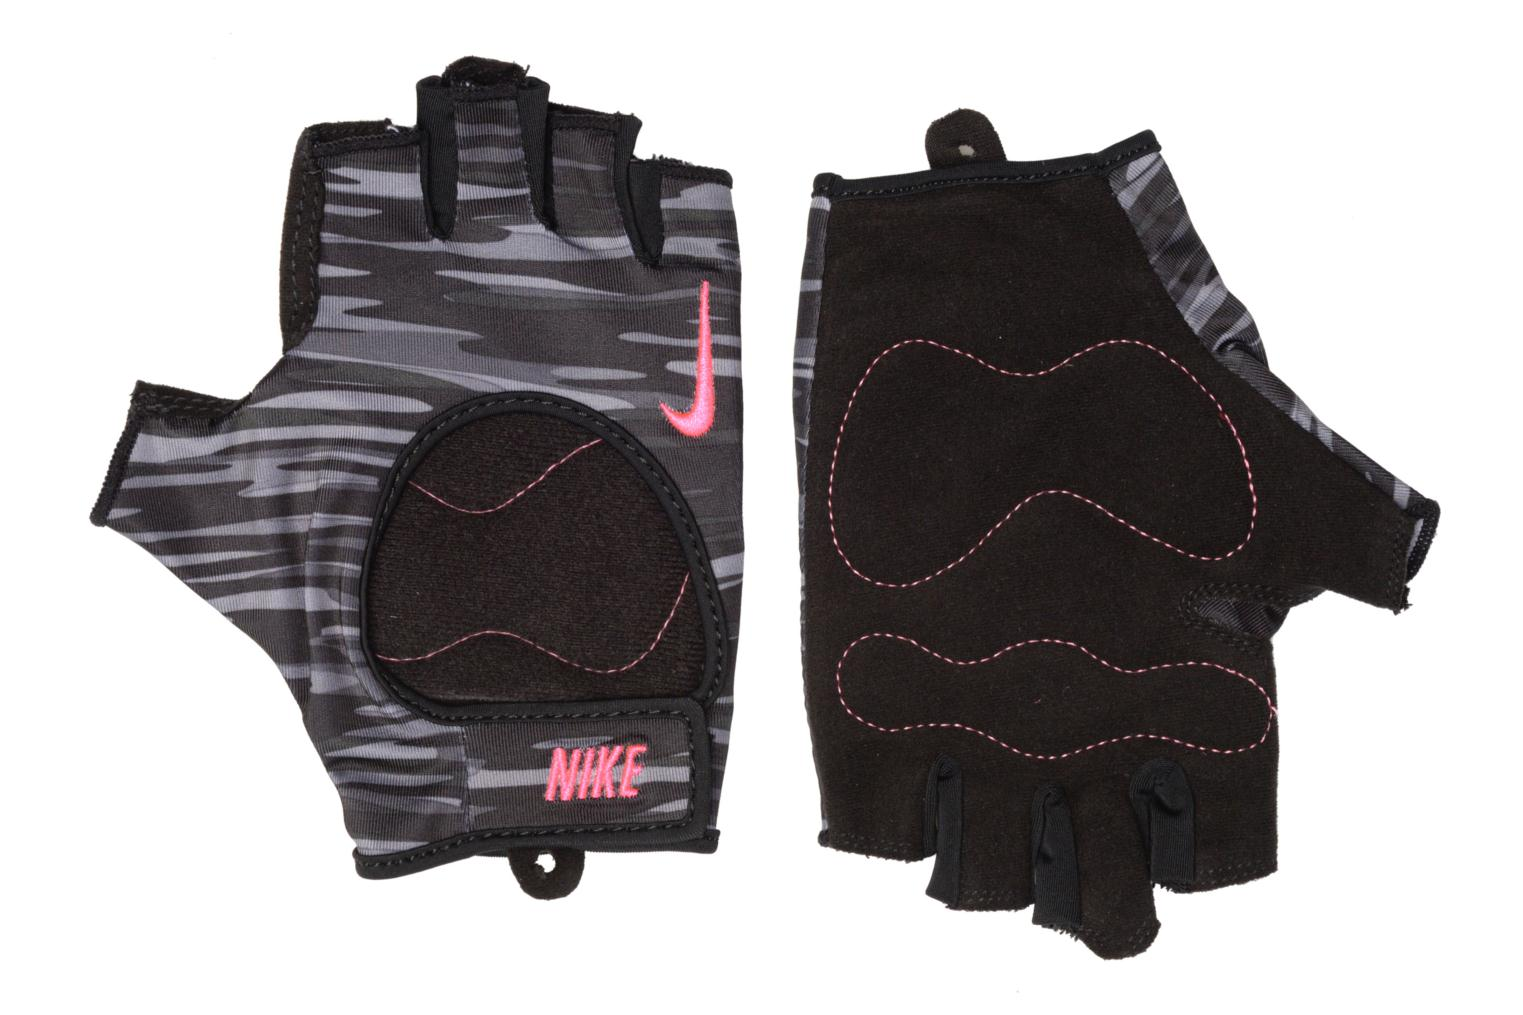 WOMEN'S FIT TRAINING GLOVES ANTHRACITE/BLACK/HYPER PINK